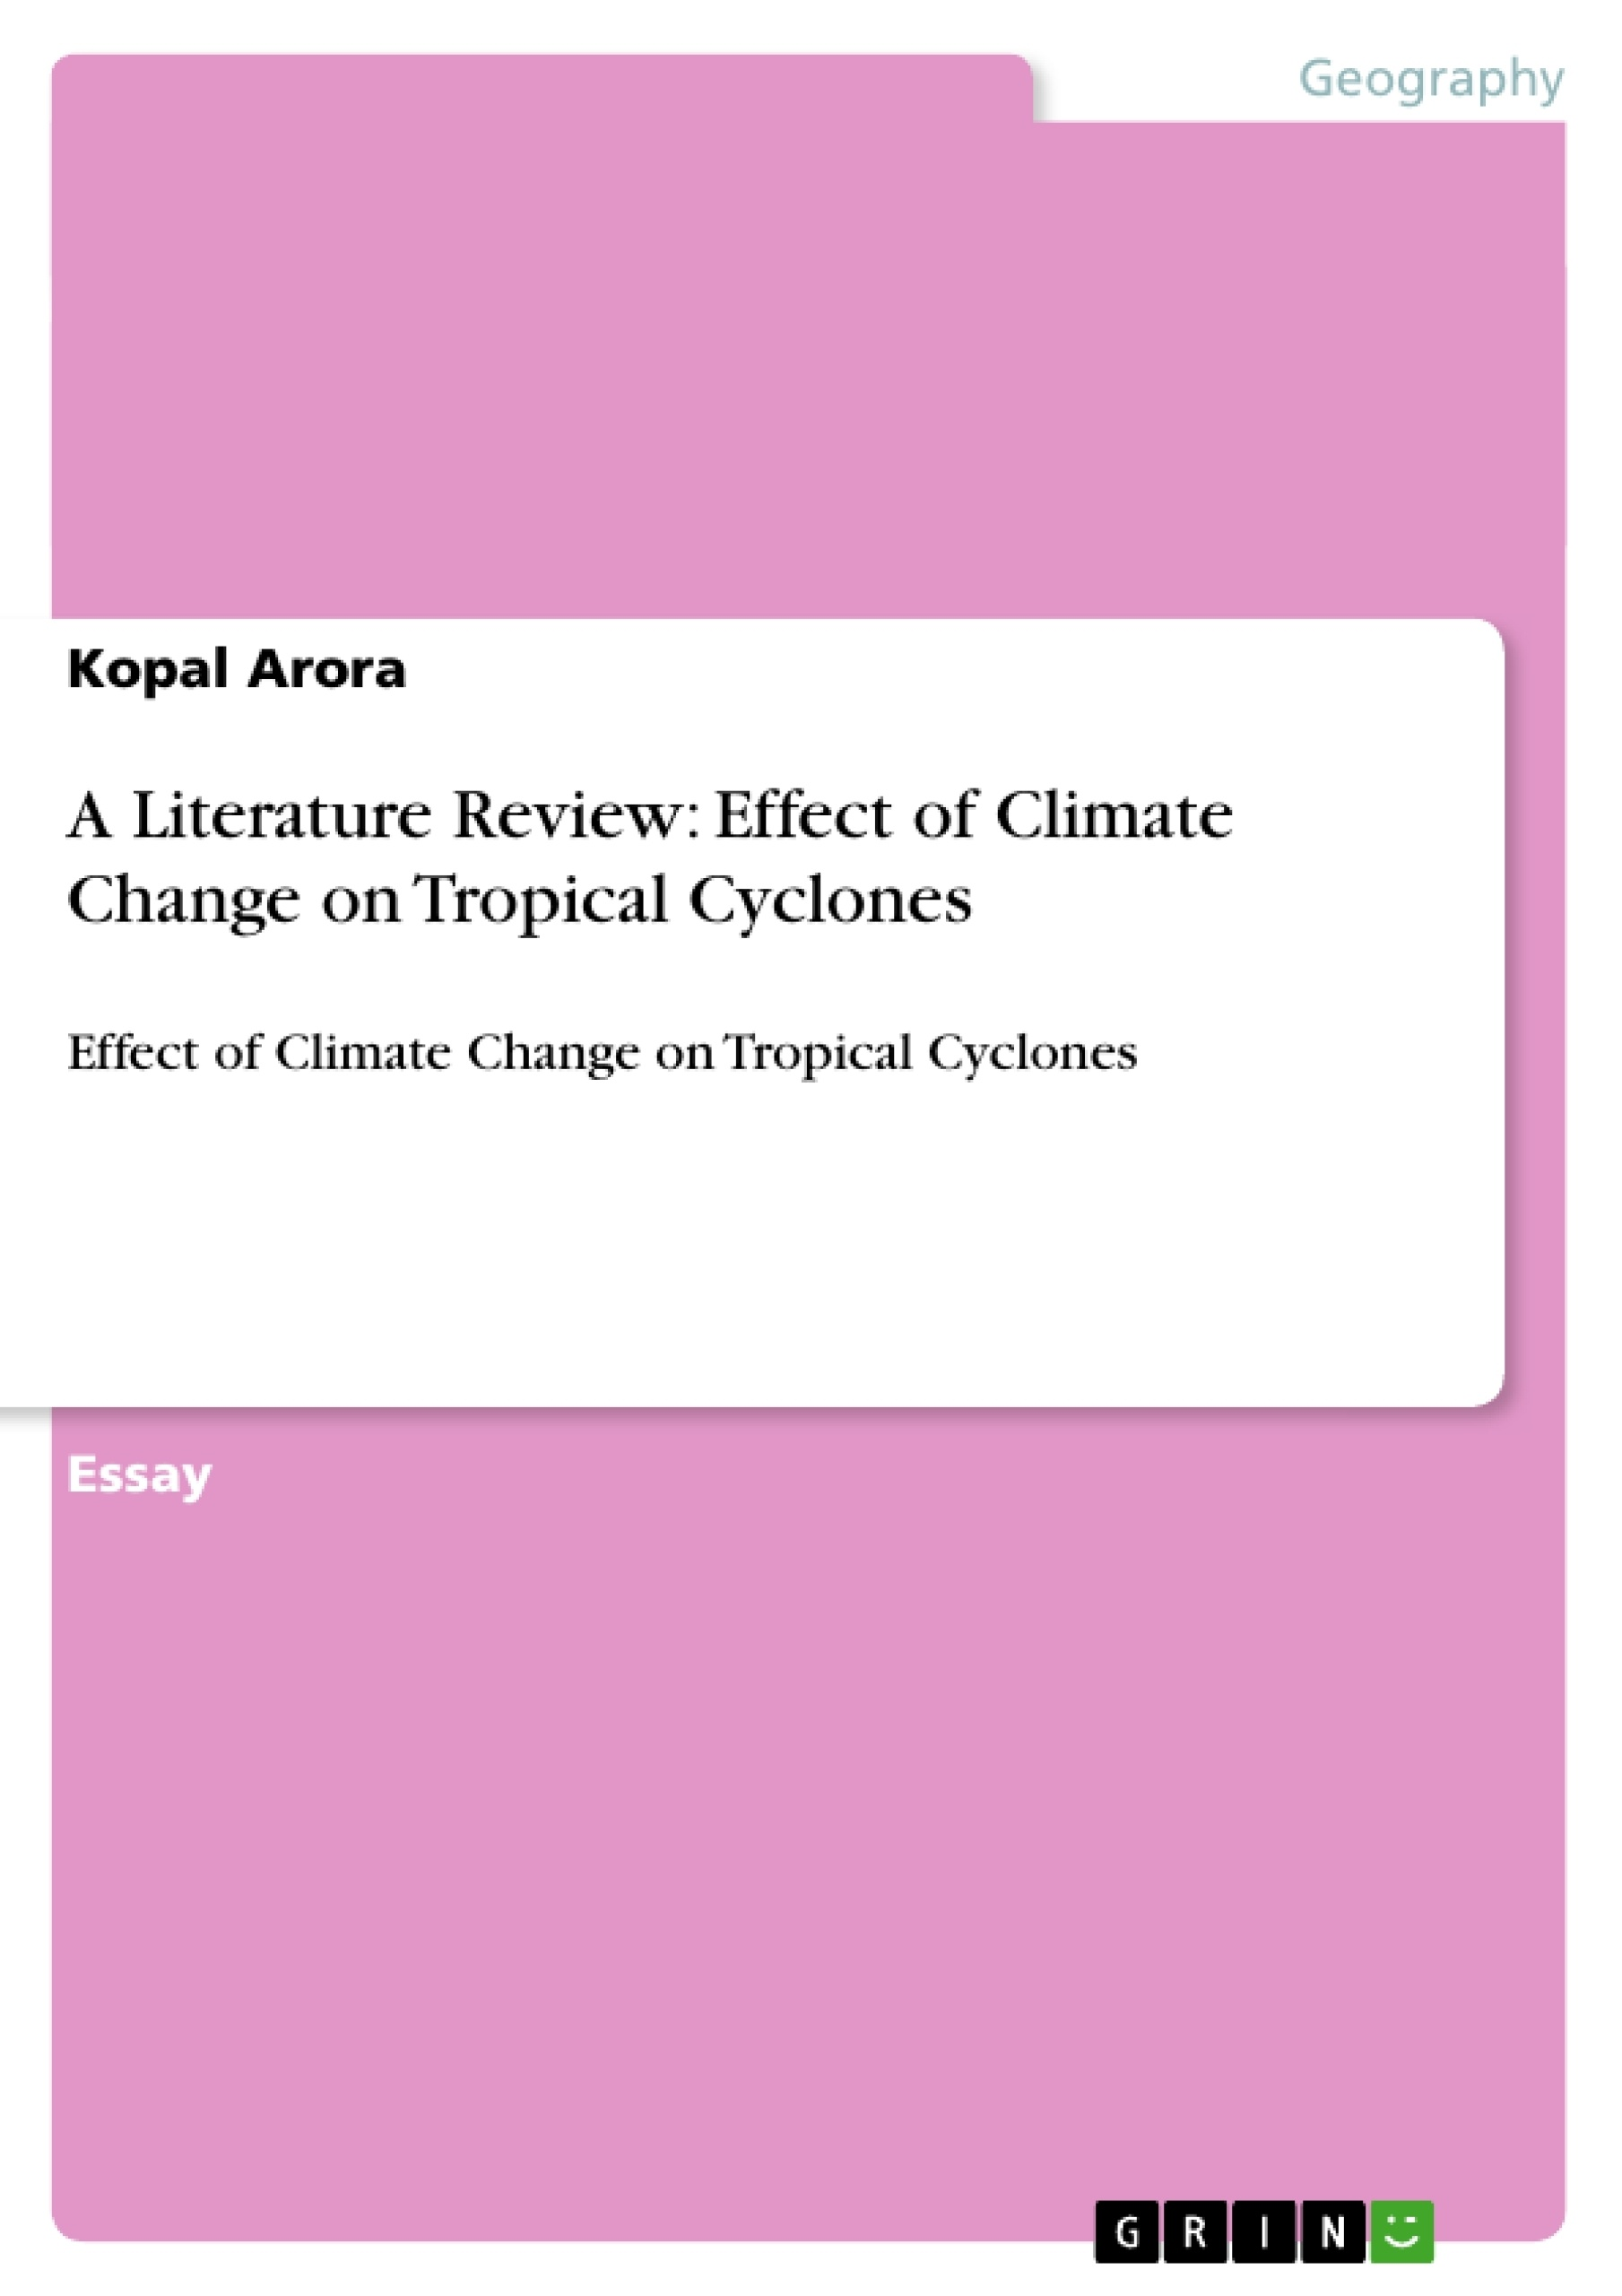 a literature review effect of climate change on tropical cyclones upload your own papers earn money and win an iphone 7